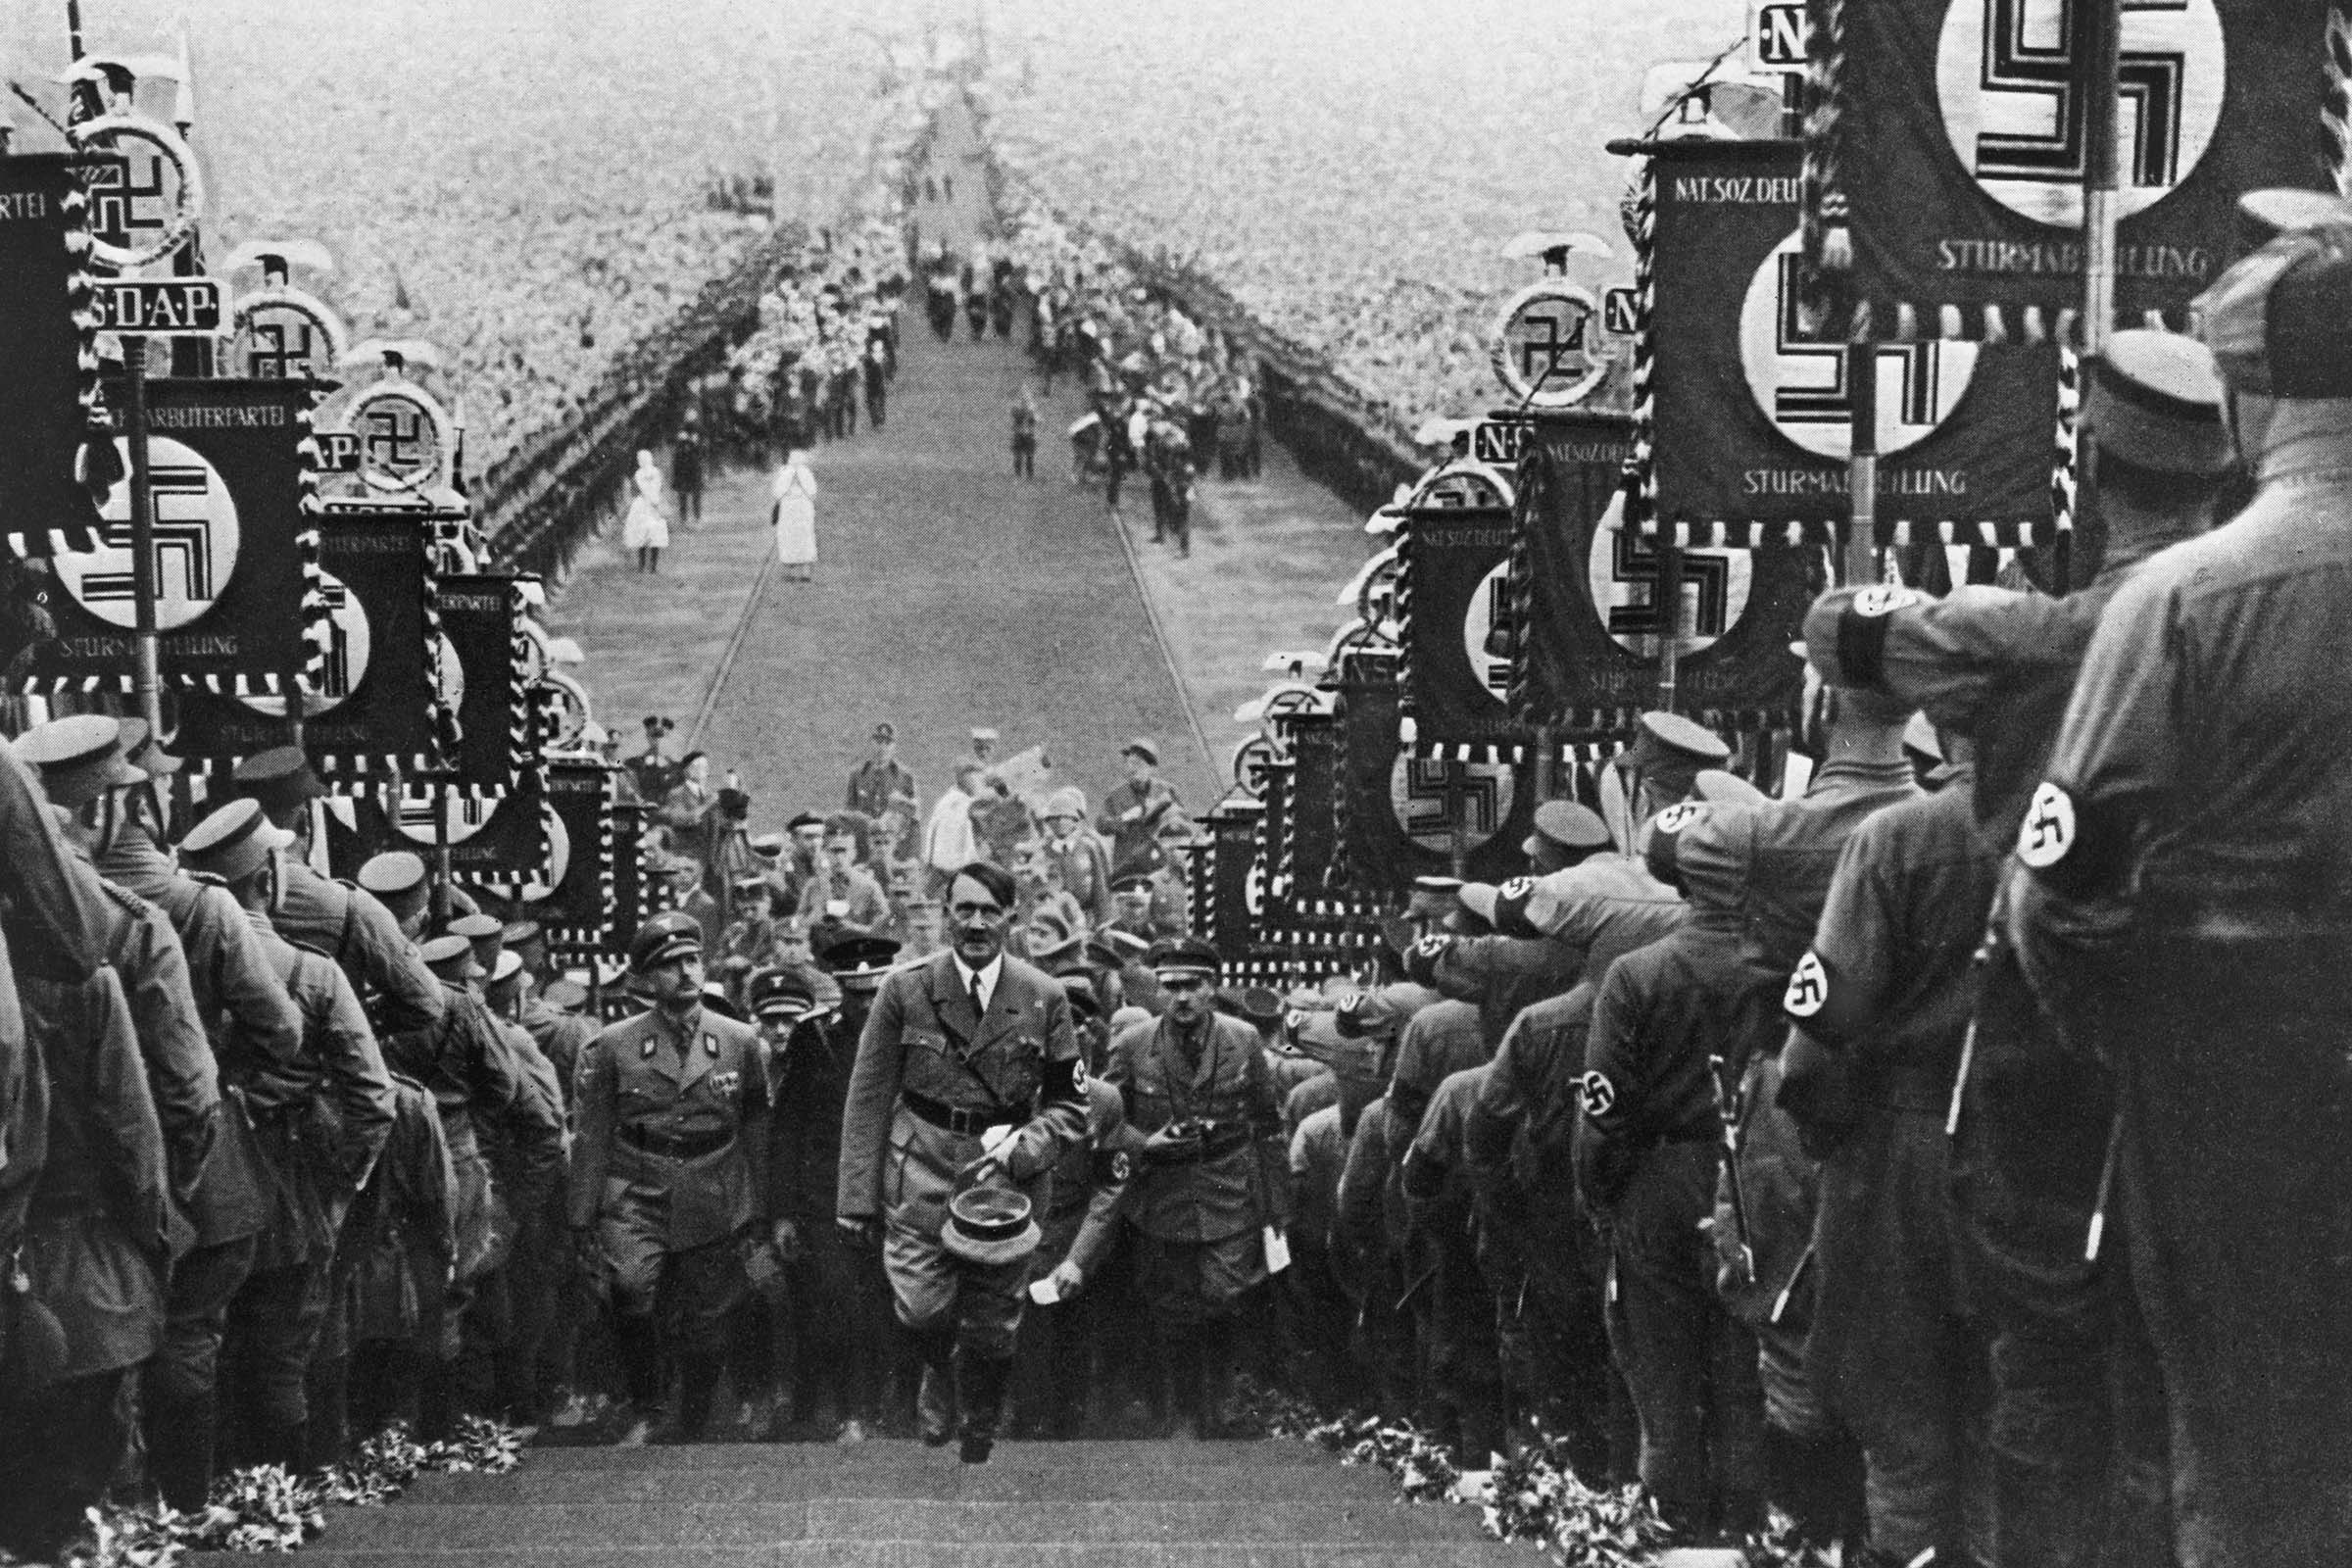 essay on adolf hitler rise to power adolf hitler's rise to power in nazi germany is nothing less than astounding in a little over a year, one man completely manipulated an entire government.